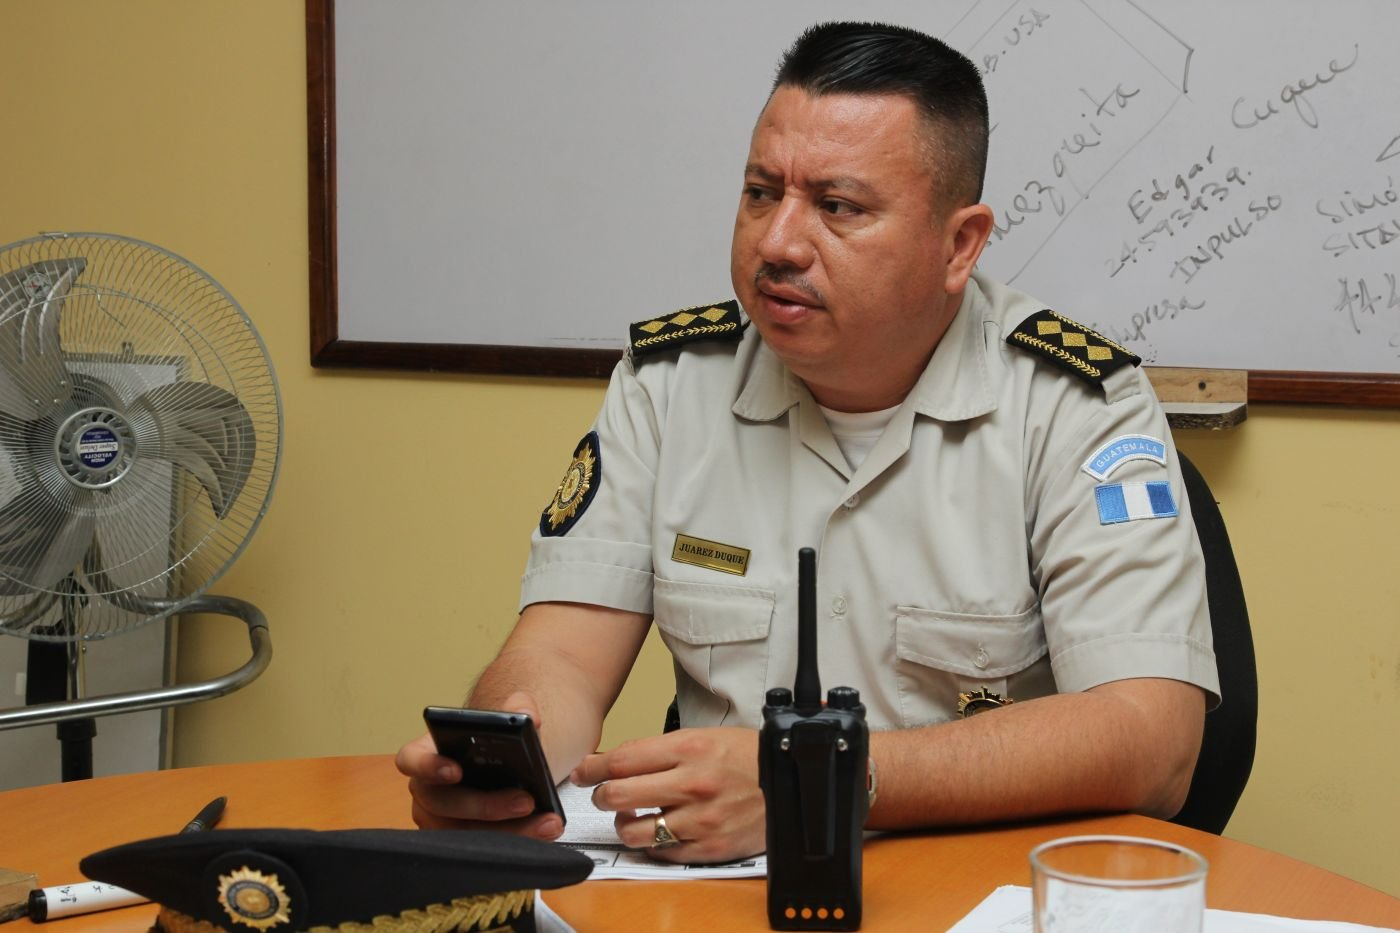 WhatsApp Helps Guatemalan Police, Local Residents Fight Crime